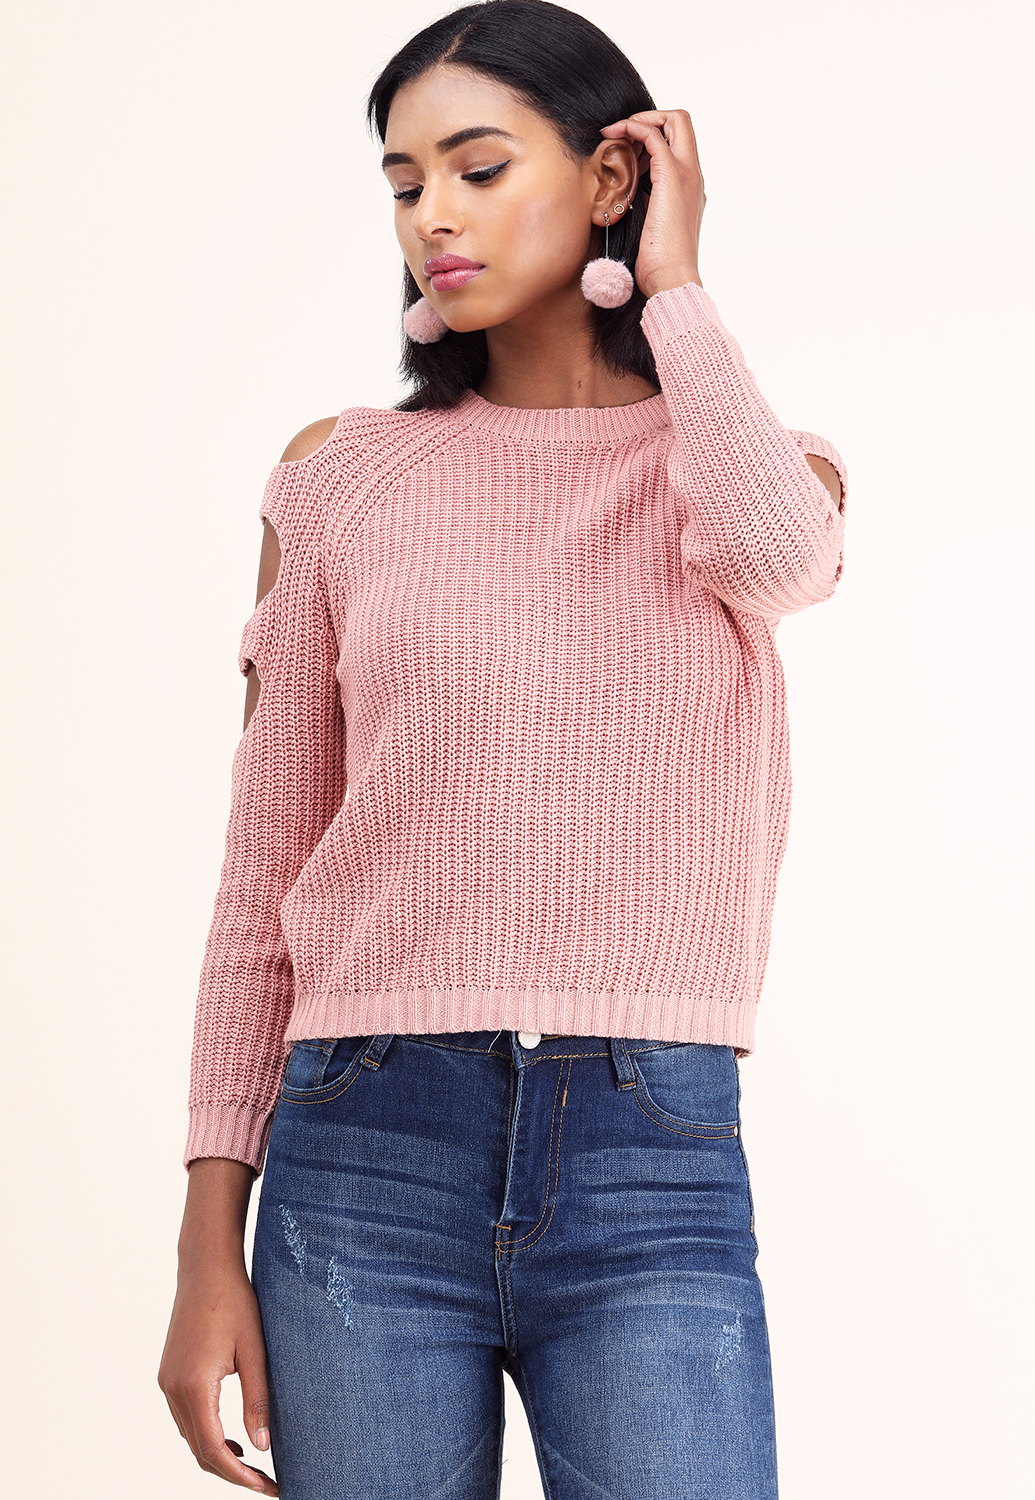 Shoulder Detail  Knit Sweater